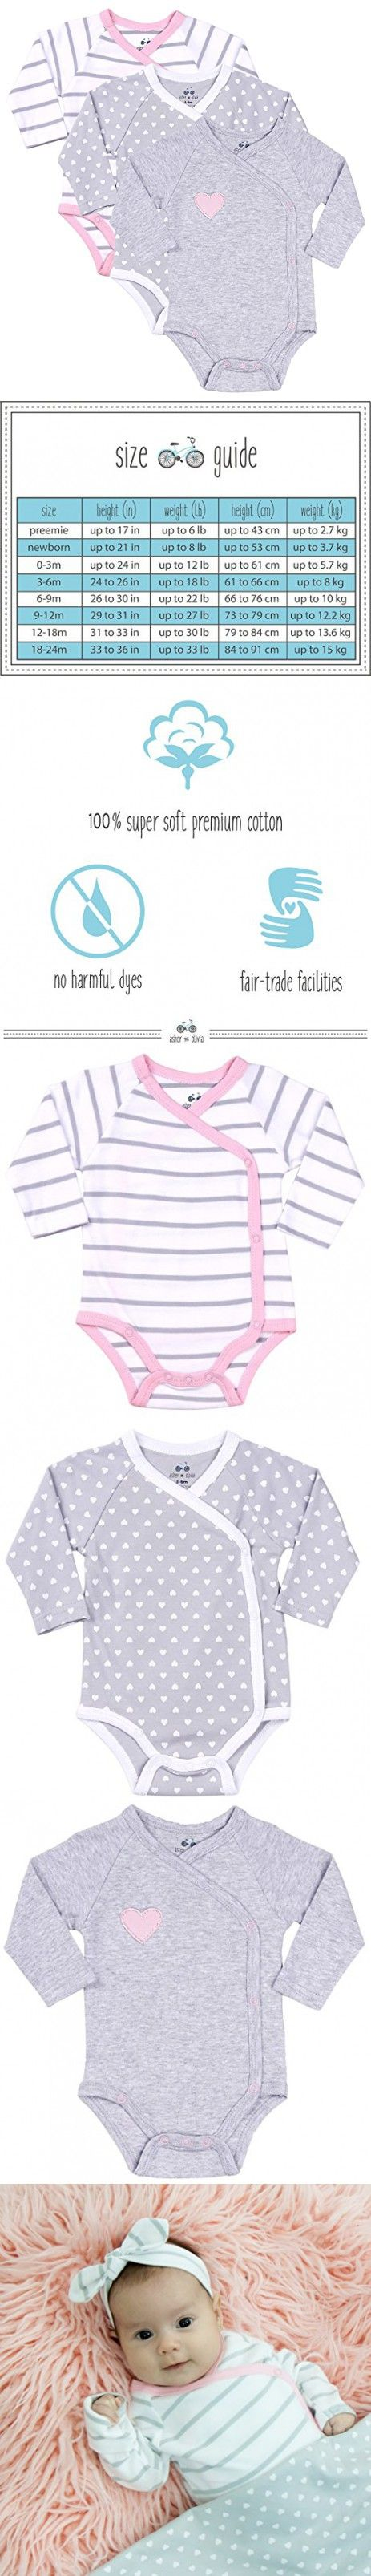 93 Best Baby Outfit Images On Pinterest Babies Clothes Boy Mom N Bab Short Tee Blue Whale Tail Size 24m Girl 3 Pack Long Sleeve Kimono Bodysuit Set 6 Month Infant Bundle Includes Gray Grey Heart Onesie And White Stripes Little